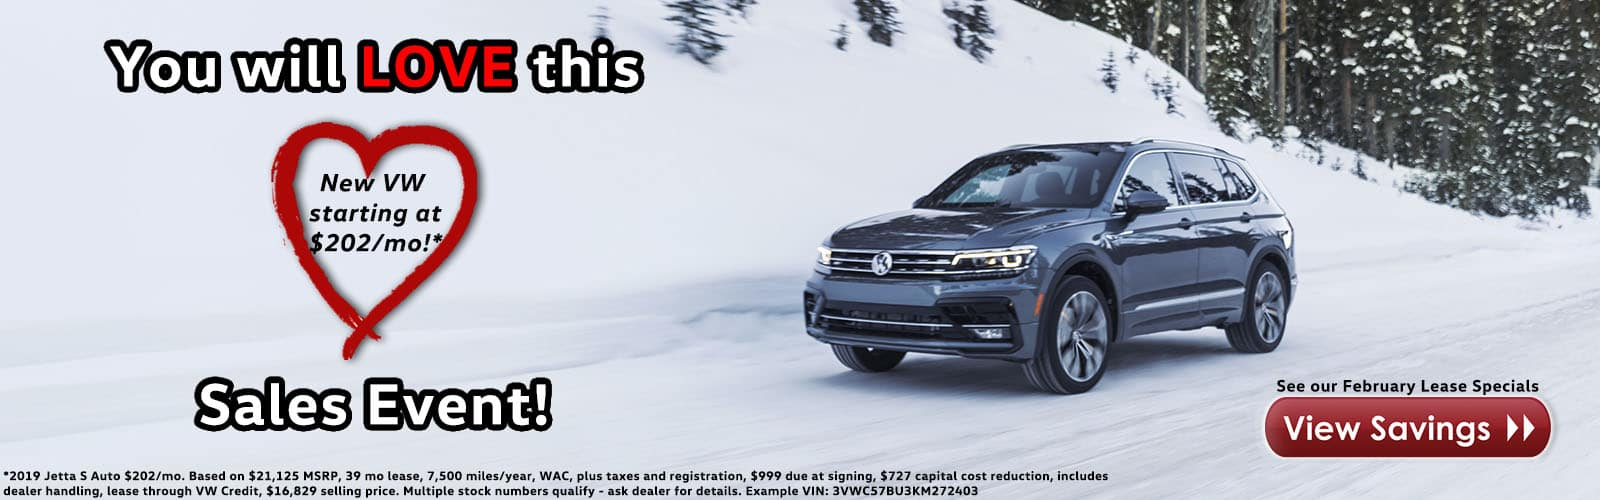 New VW starting at $202/month!